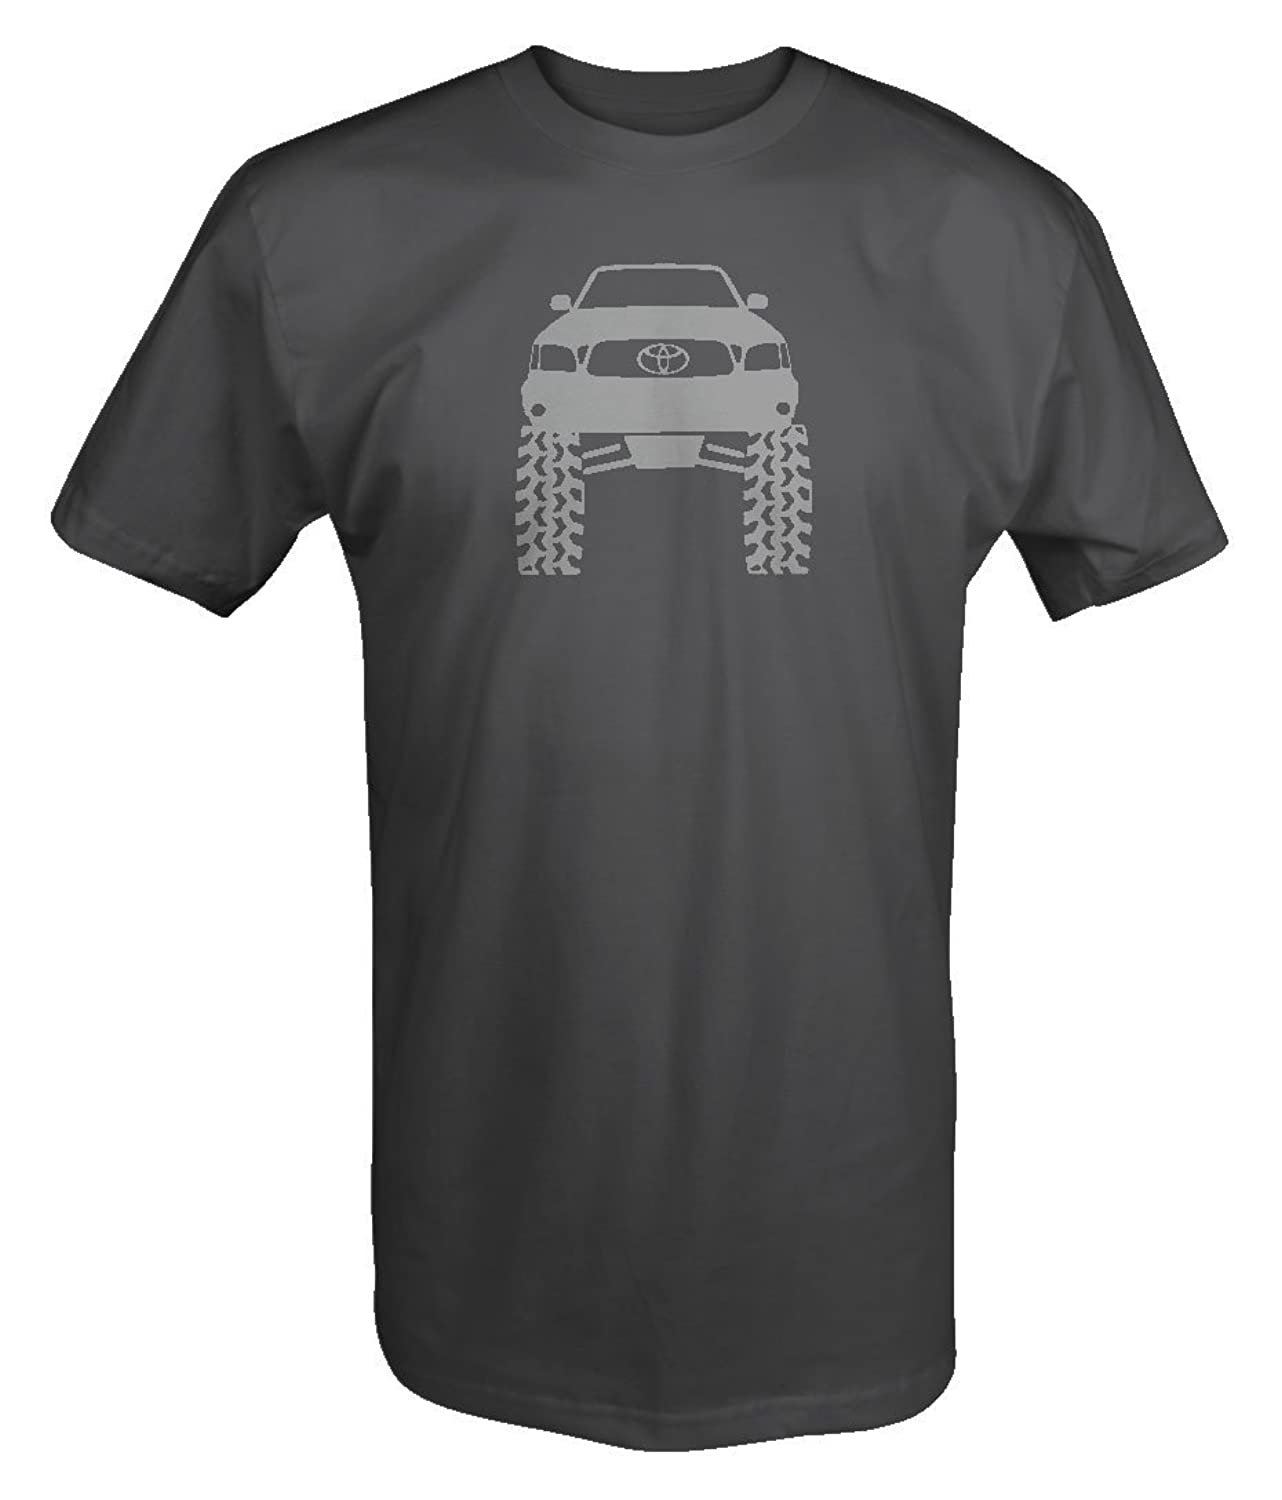 Stealth-Toyota Tacoma SR5 TRD Lifted Mud Tires Truck T shirt